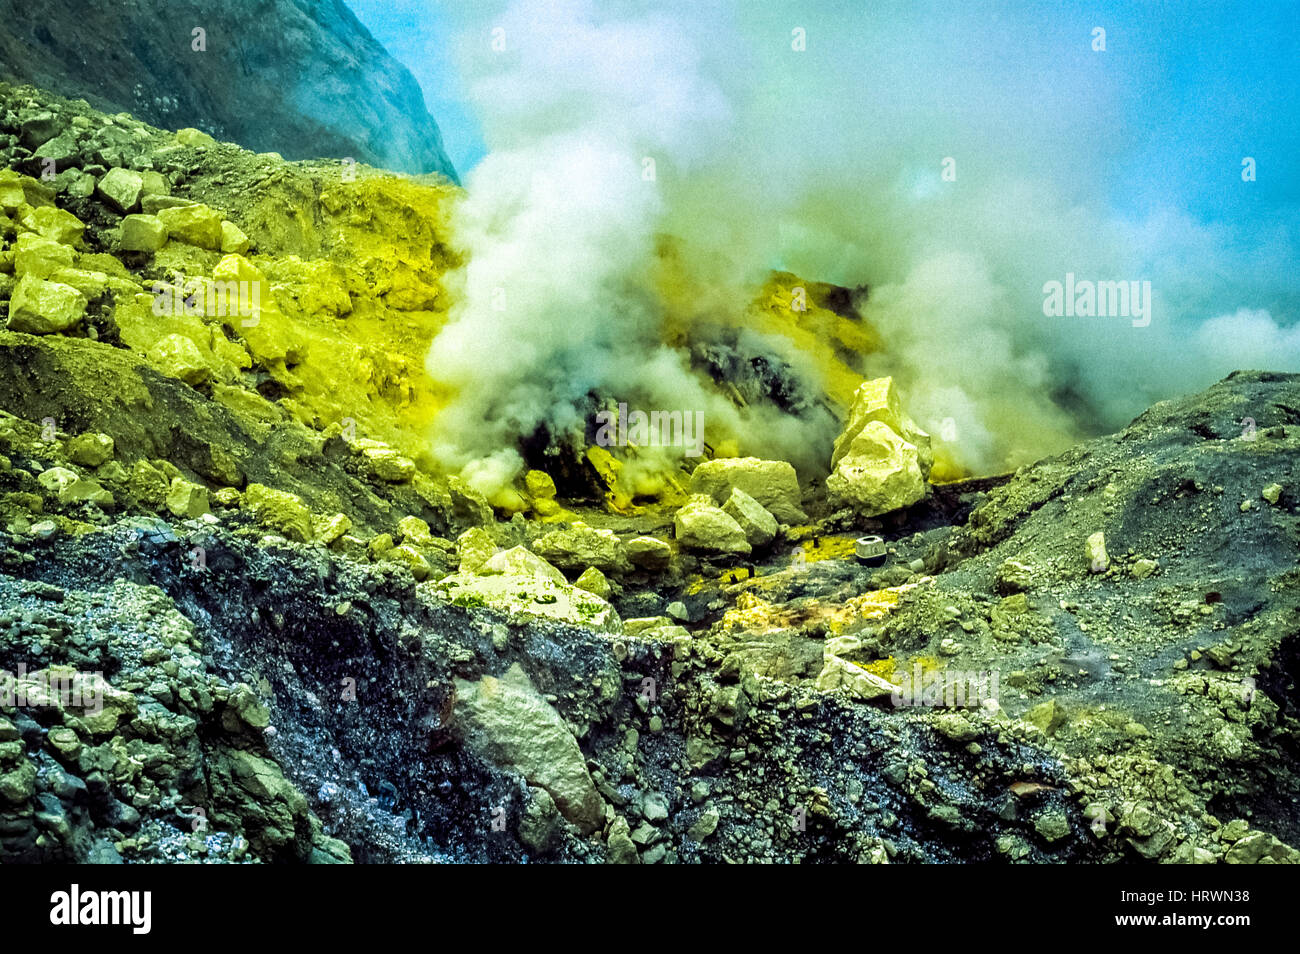 Steams rising from the fumaroles of Mount Ijen volcano in East Java, Indonesia. Stock Photo